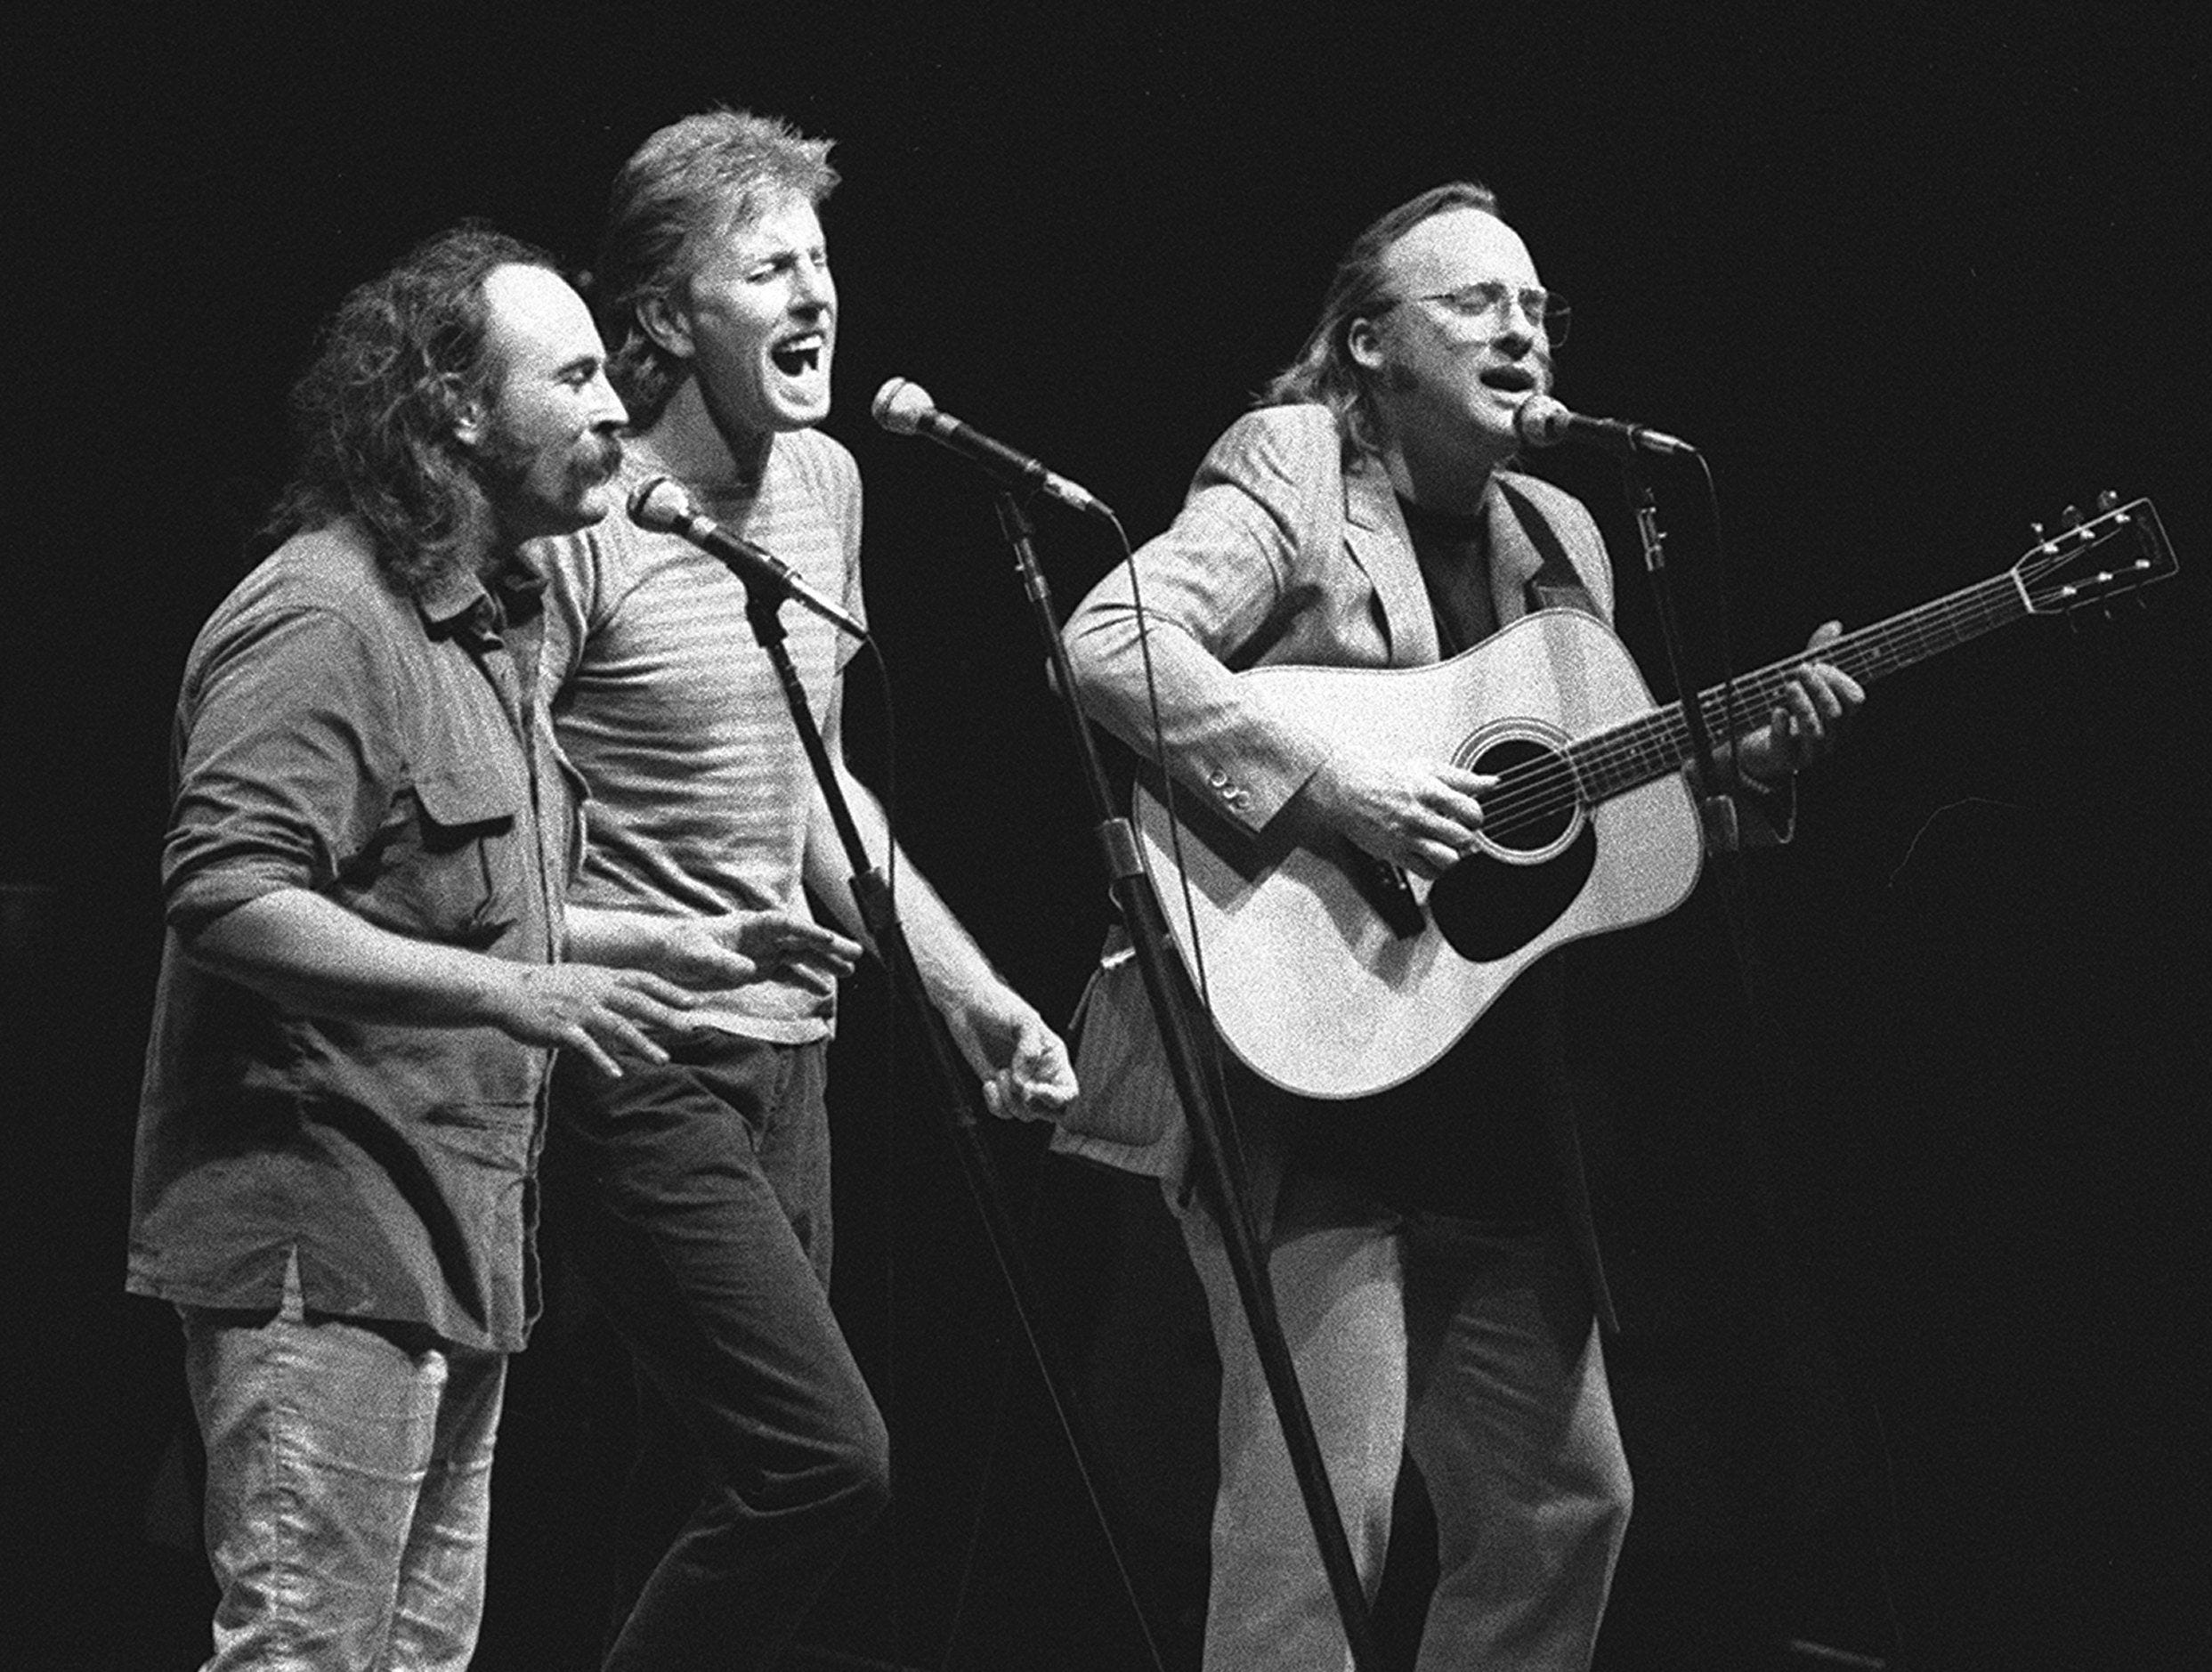 Crosby, Stills and Nash perform before approximately 7,000 people at the Mid-South Coliseum on Oct. 26, 1982.